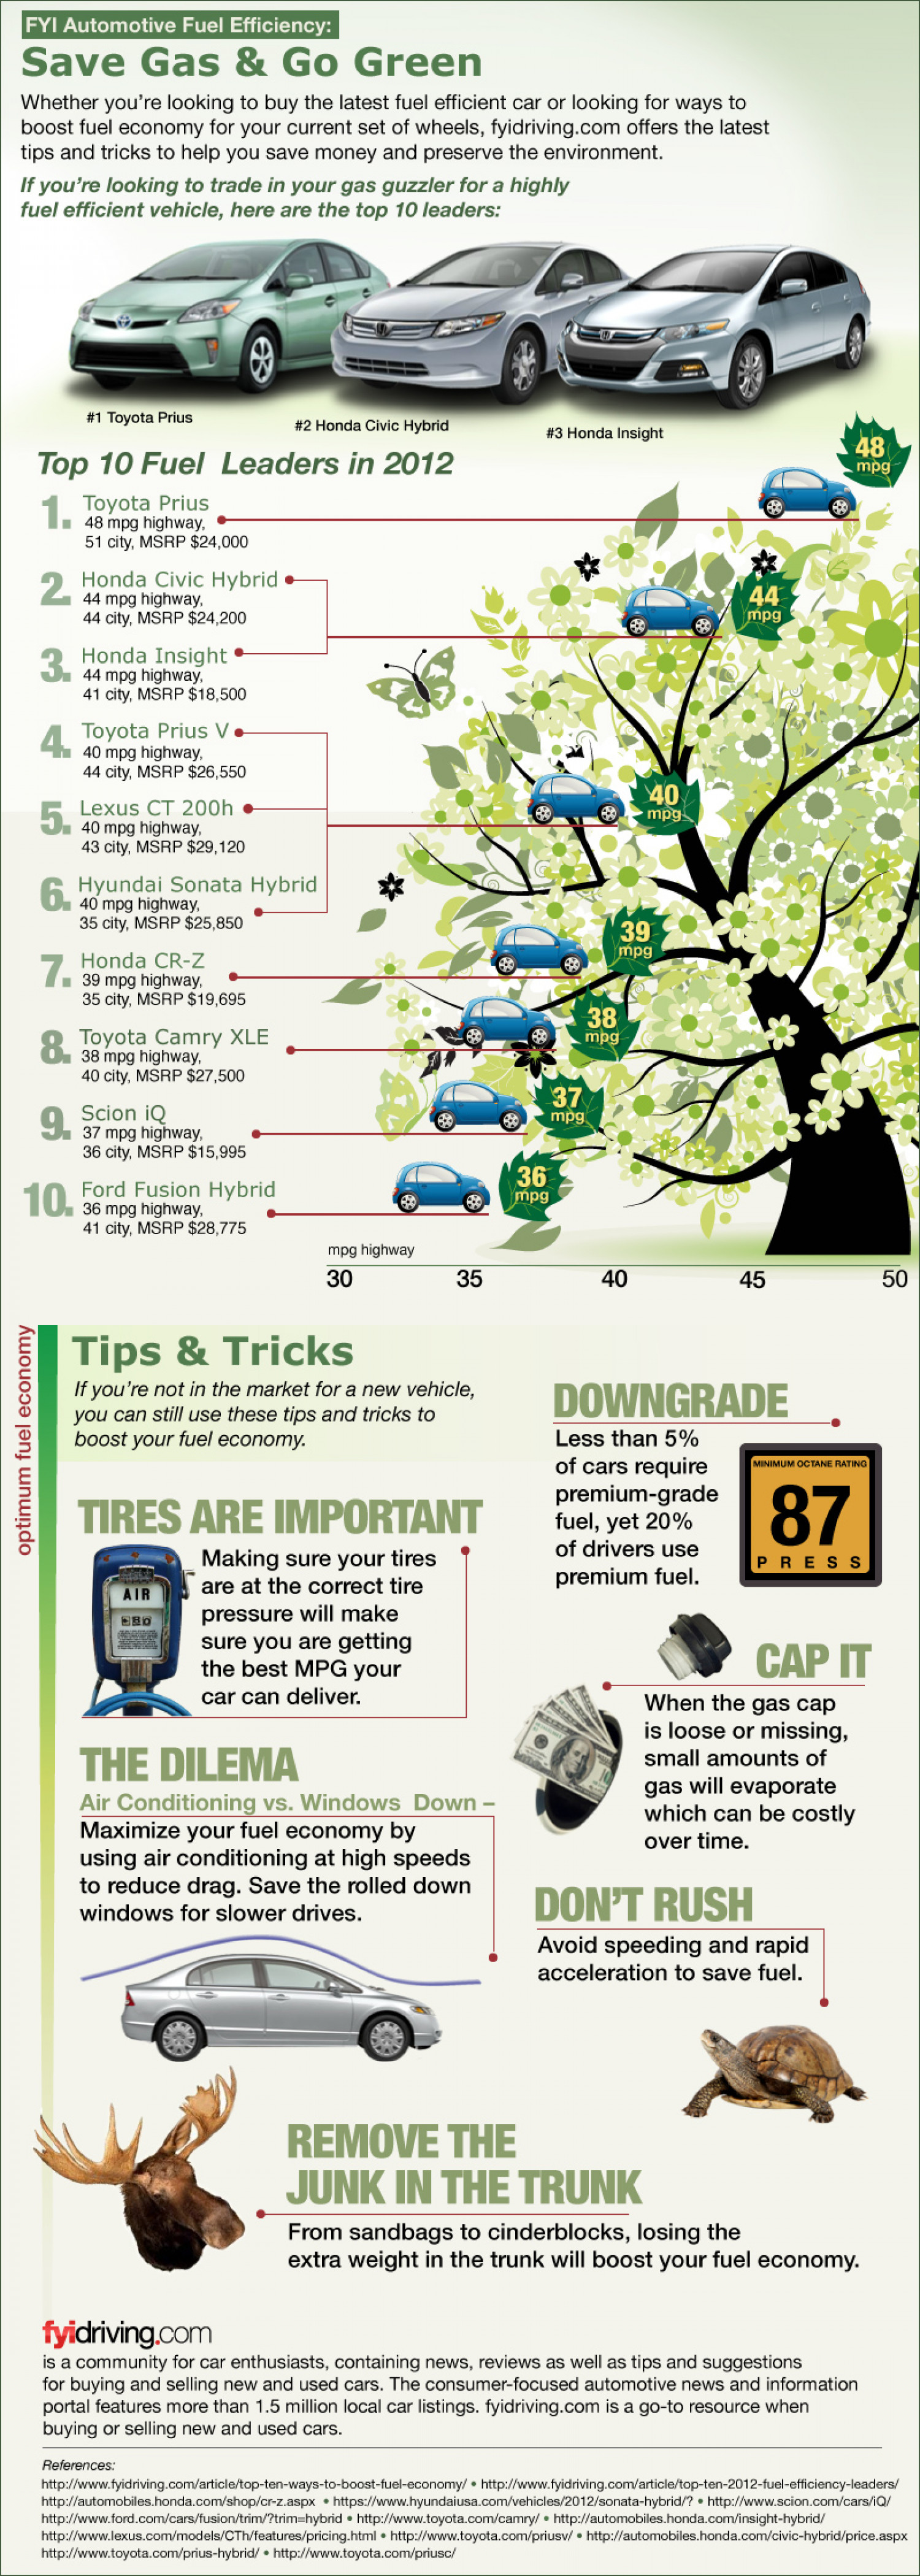 Save Gas and Go Green Infographic